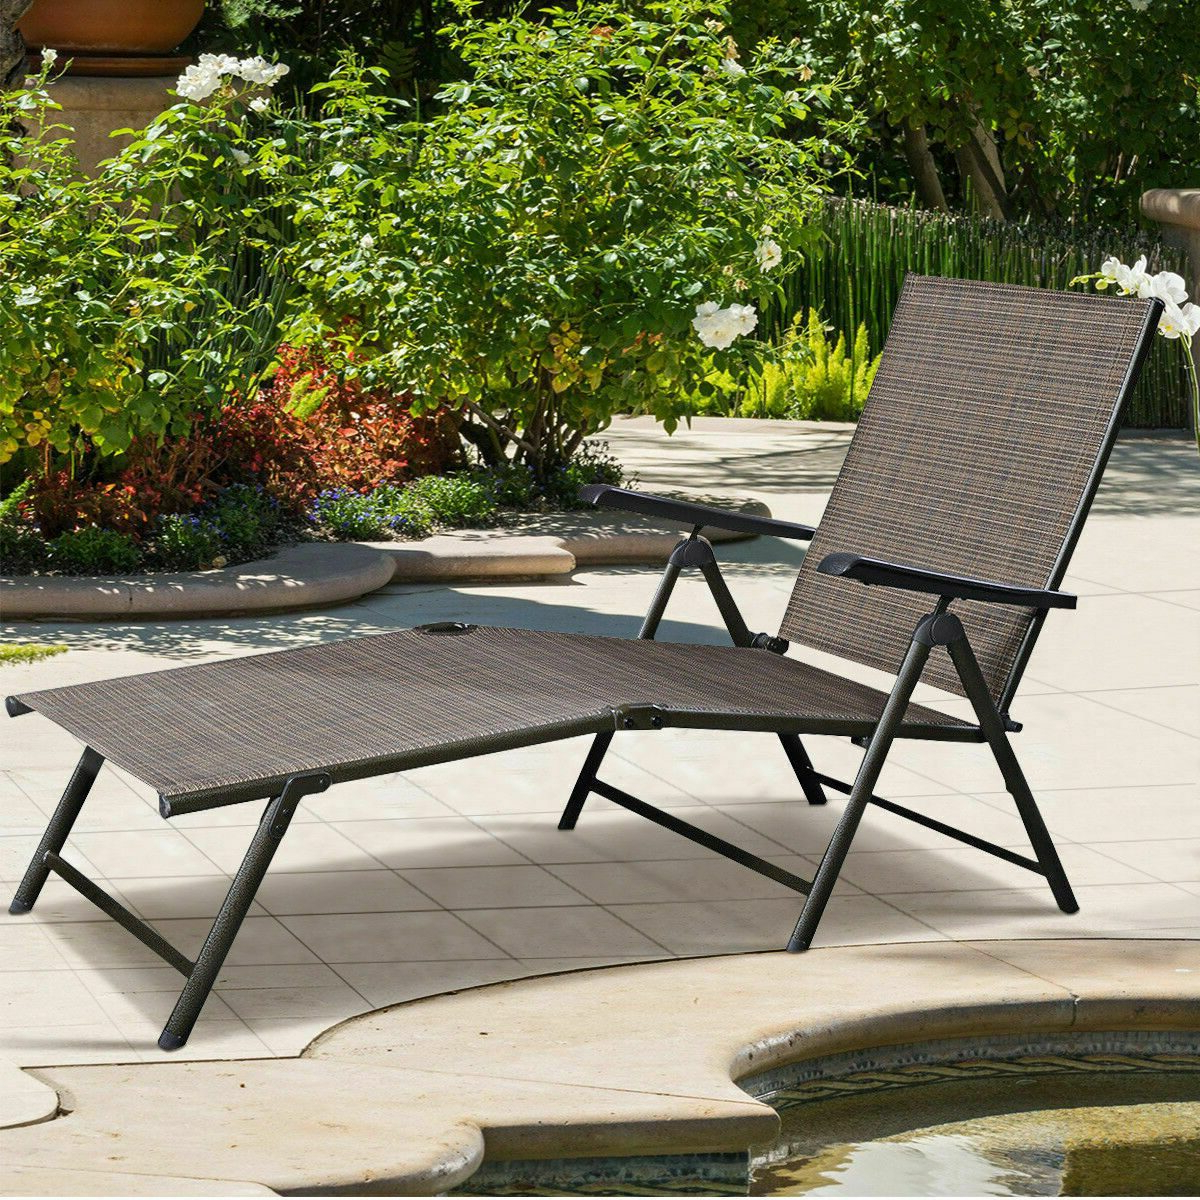 Most Recent Outdoor Yard Pool Recliner Folding Lounge Table Chairs In Citycw Adjustable Pool Chaise Lounge Chair Recliner Textilene Outdoor Patio  Furniture (View 11 of 25)